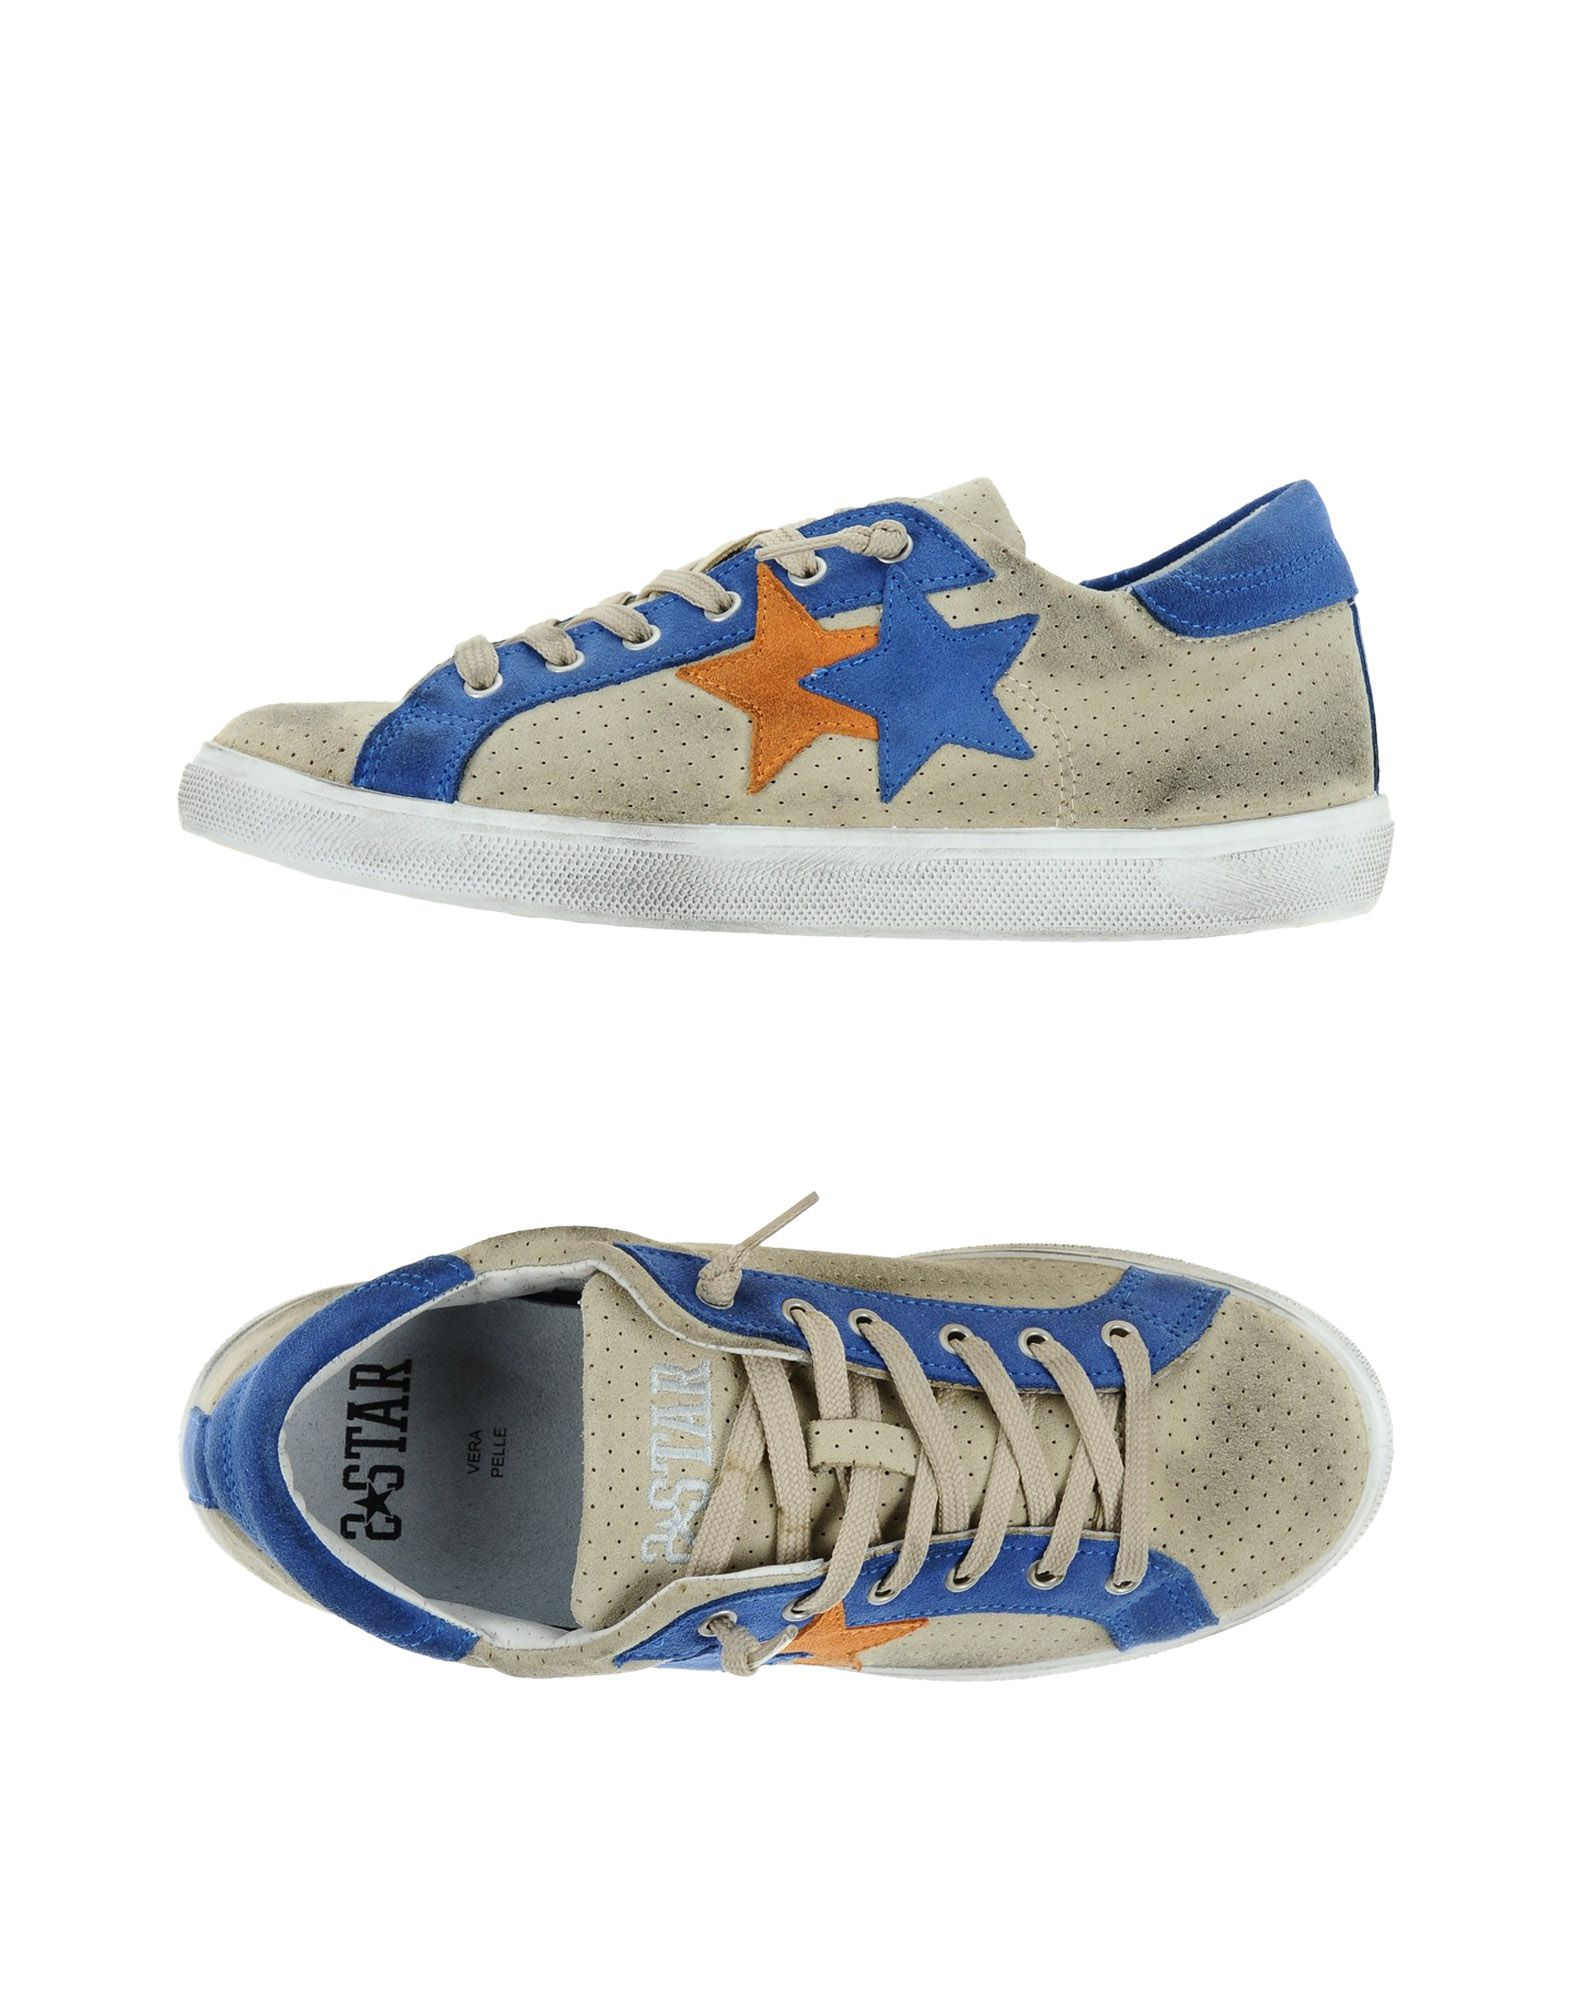 Moda Sneakers 2Star Donna - 11336838WH